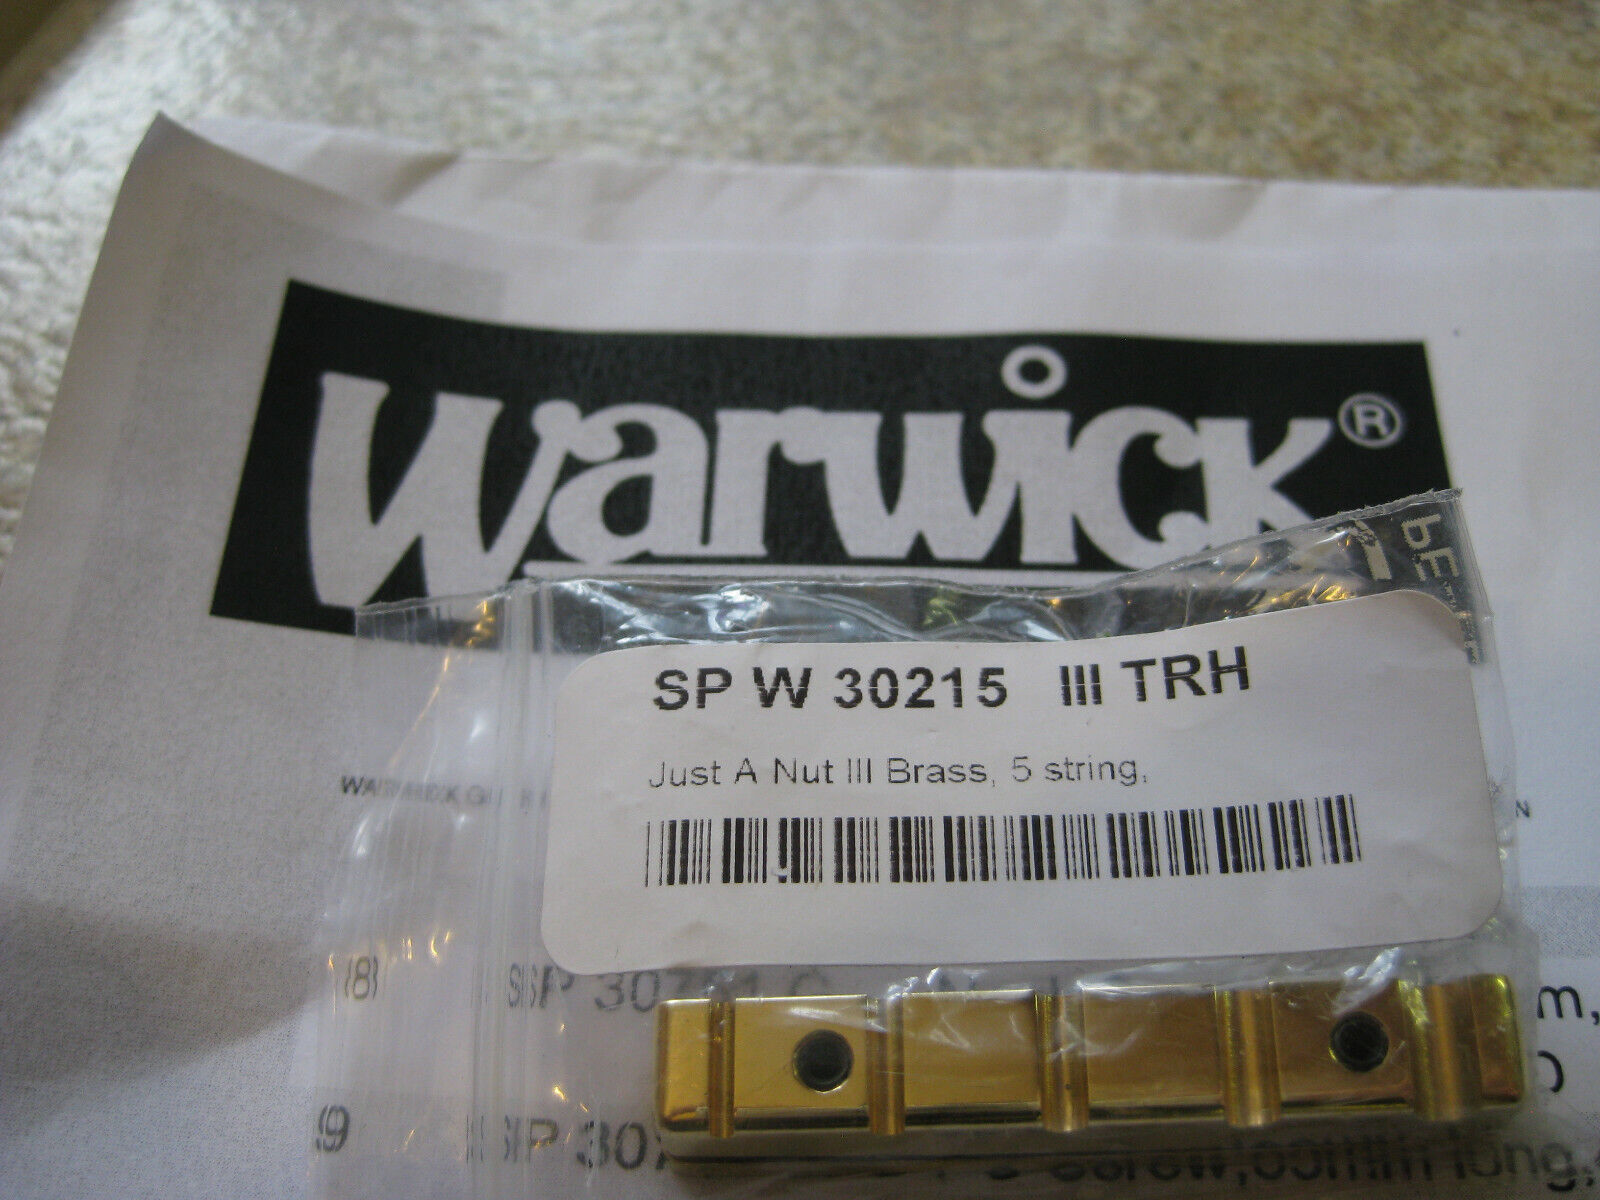 New Warwick Brass Just A Nut III 5 String Bass 45.0MM, Right Handed, Std Spacing